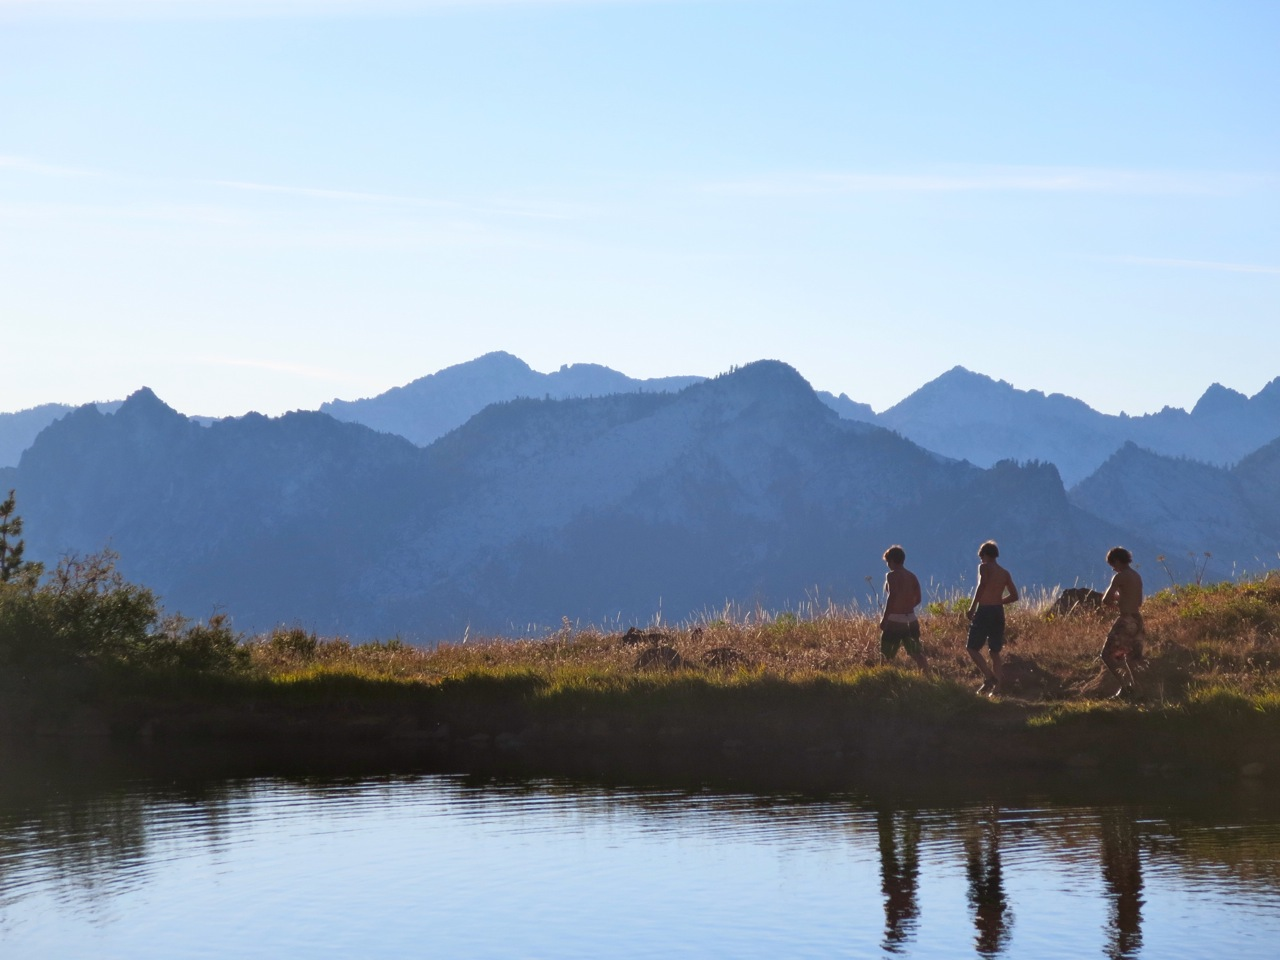 Boys on Lake with Mtns in Backdrop small.jpg